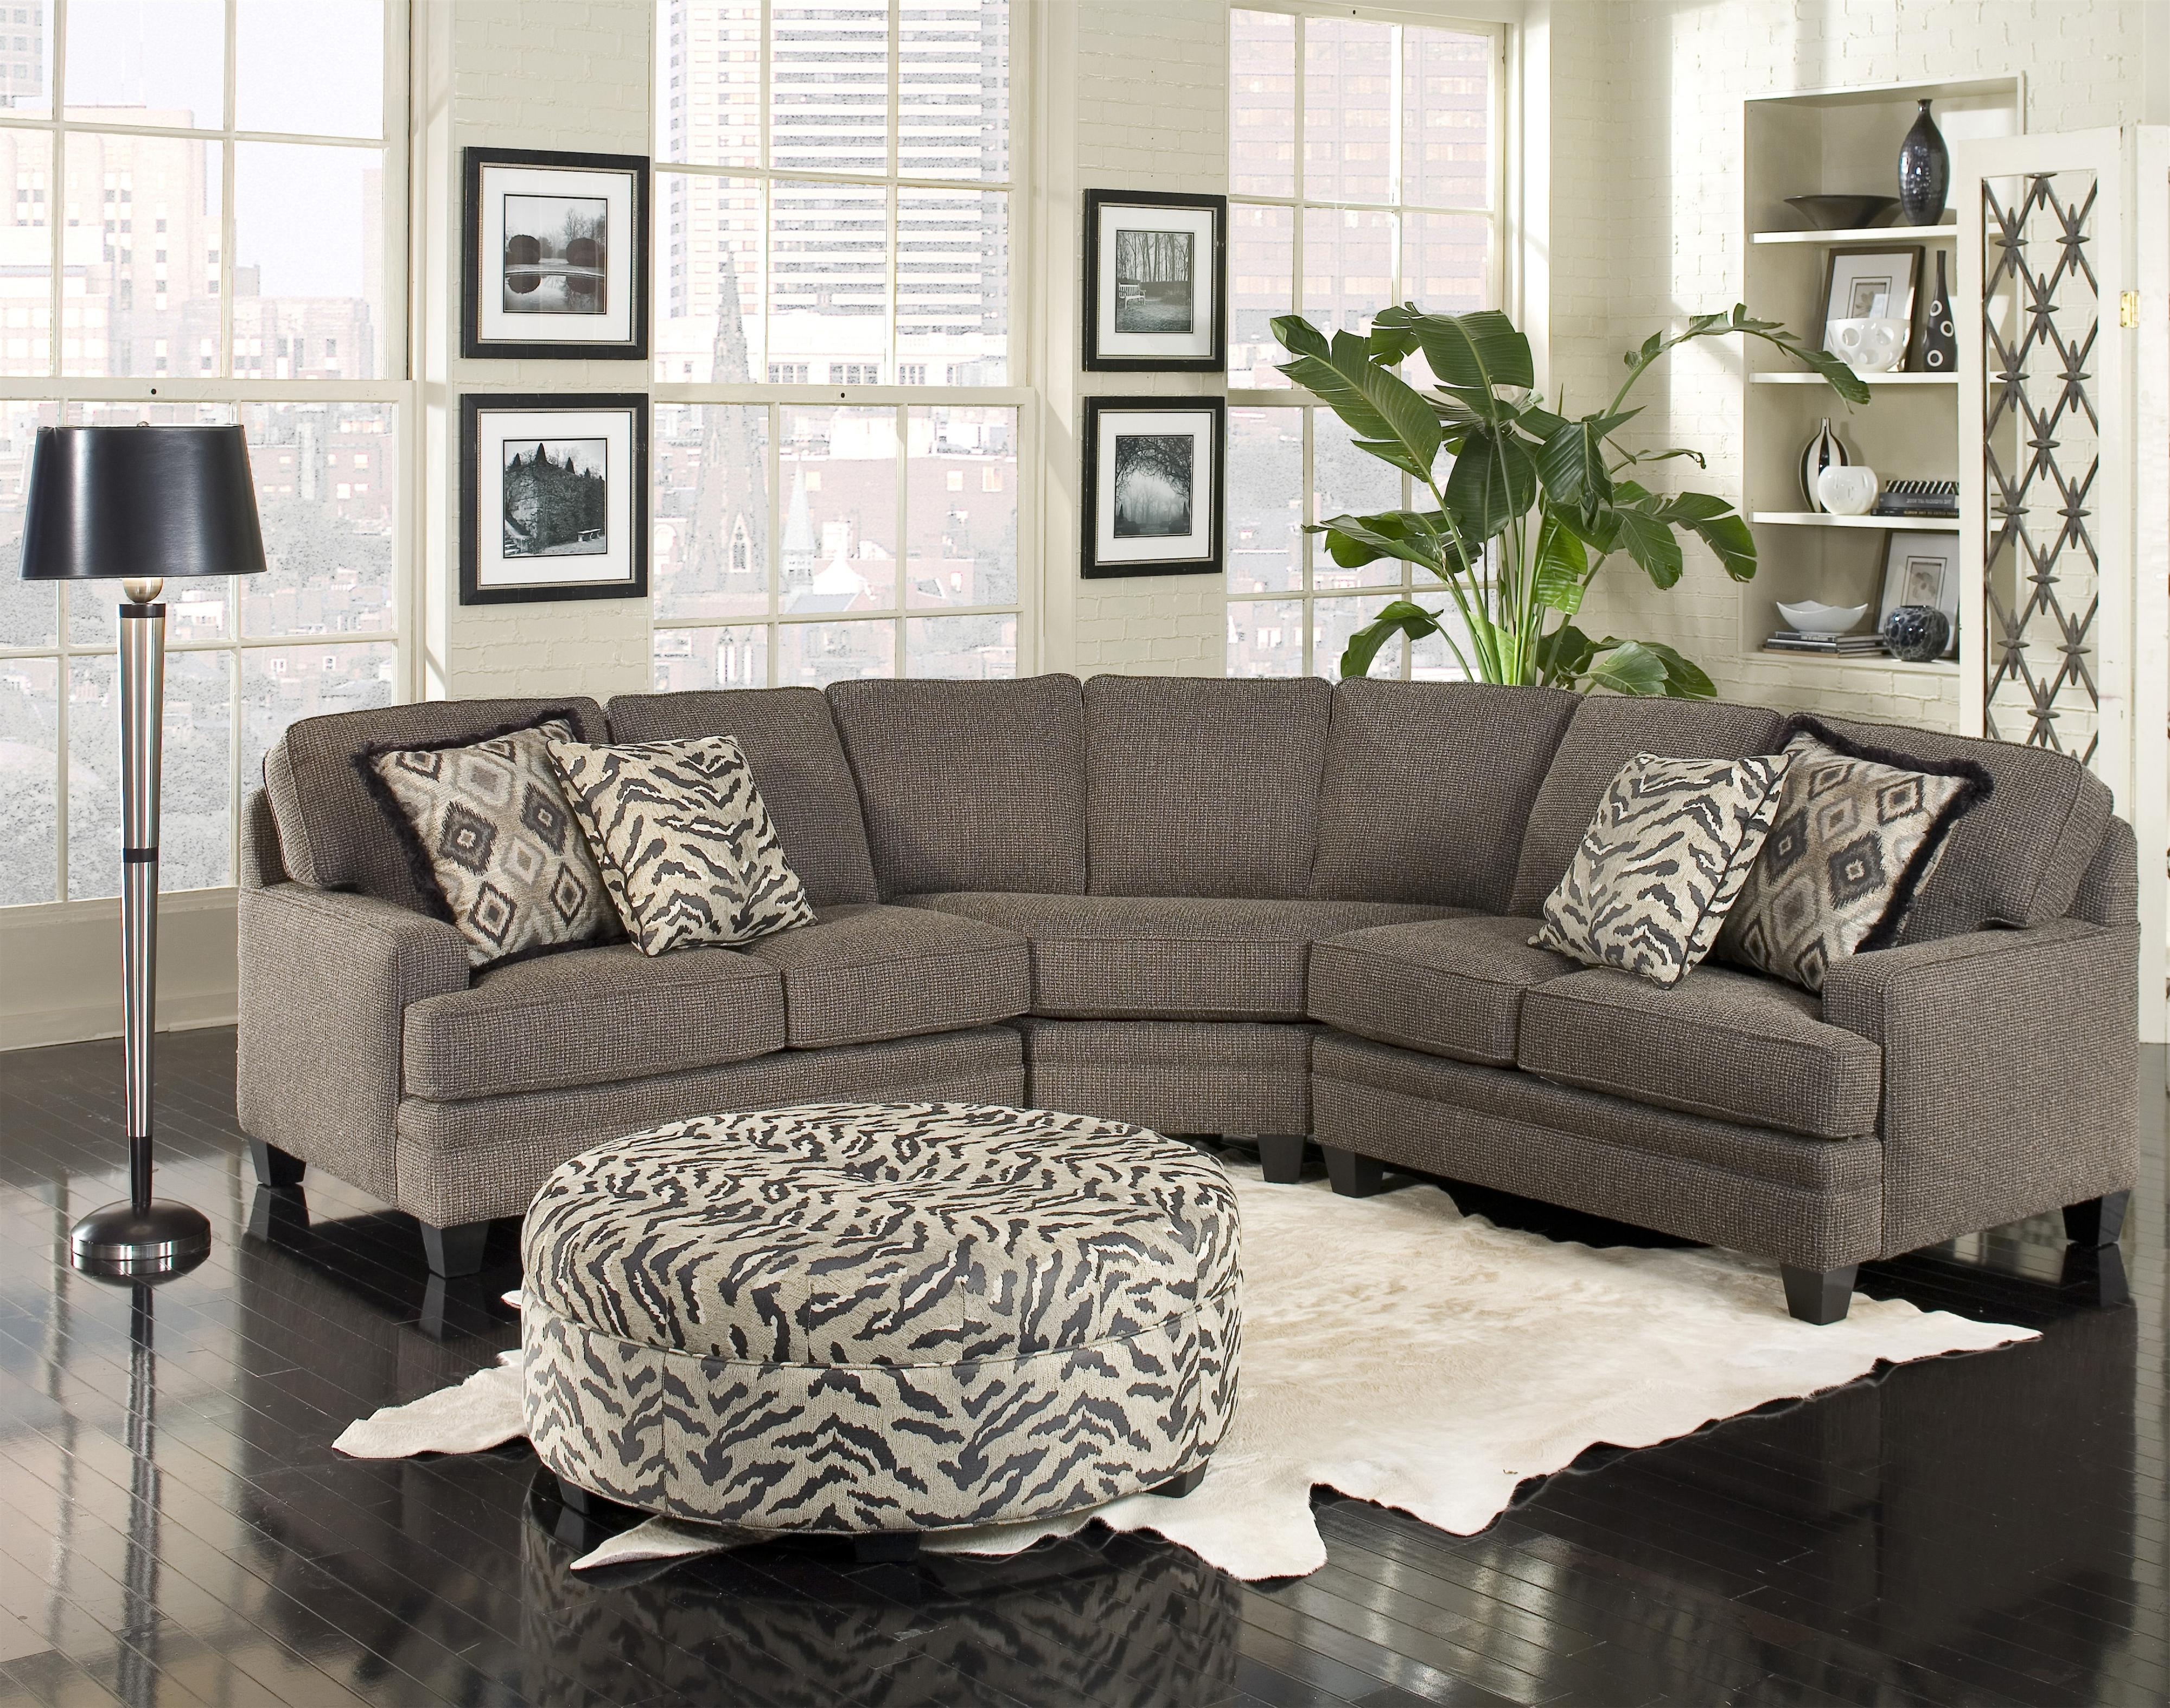 Well Liked Harrisburg Pa Sectional Sofas Within Build Your Own (5000 Series) Five Person Sectional Sofa With (View 3 of 15)